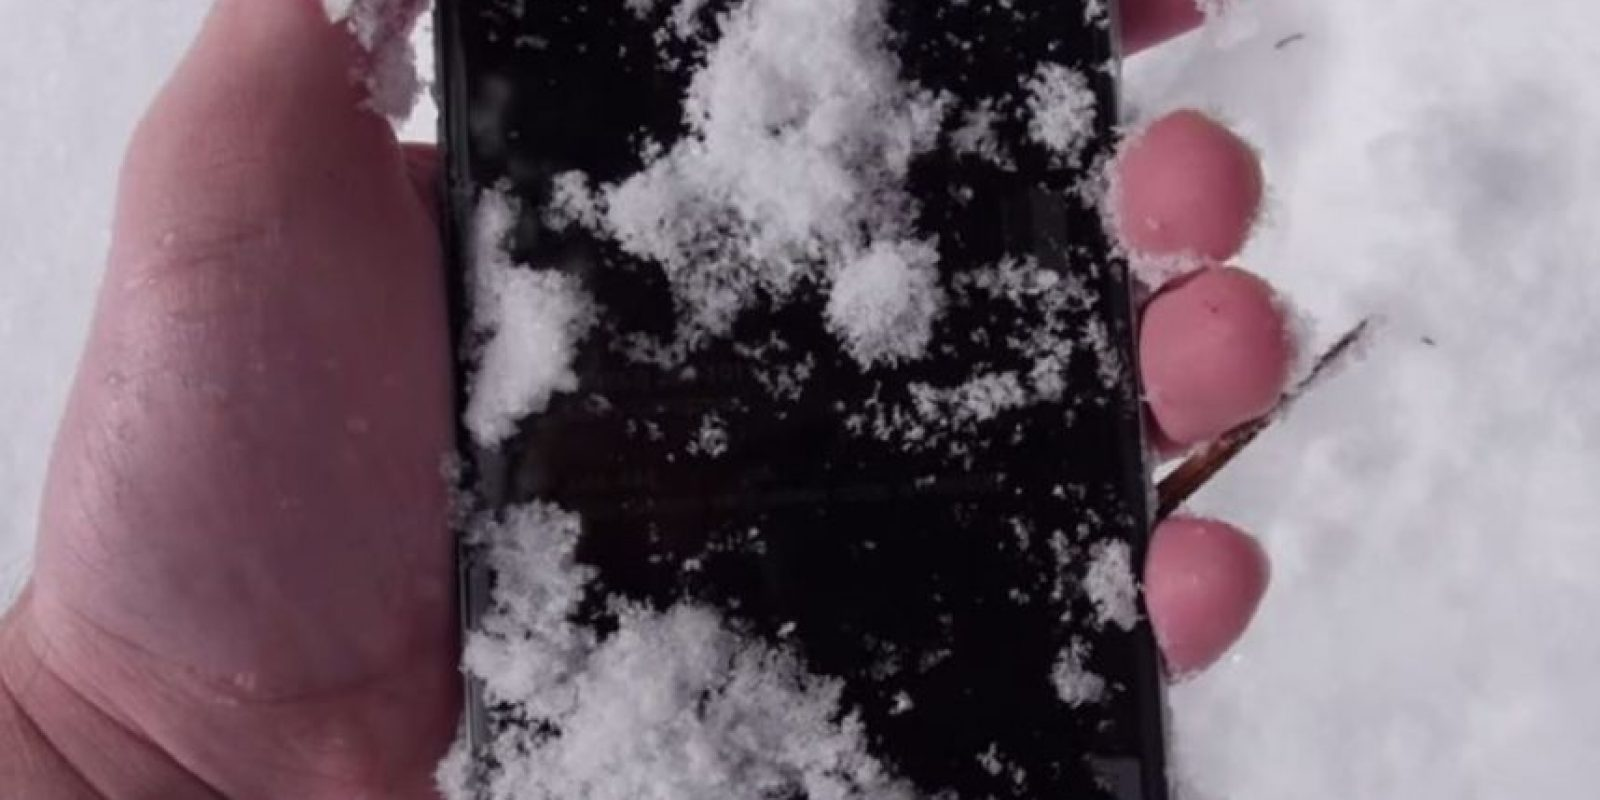 El iPhone 6 tras estar 24 horas bajo la nieve. Foto: TechRax / YouTube